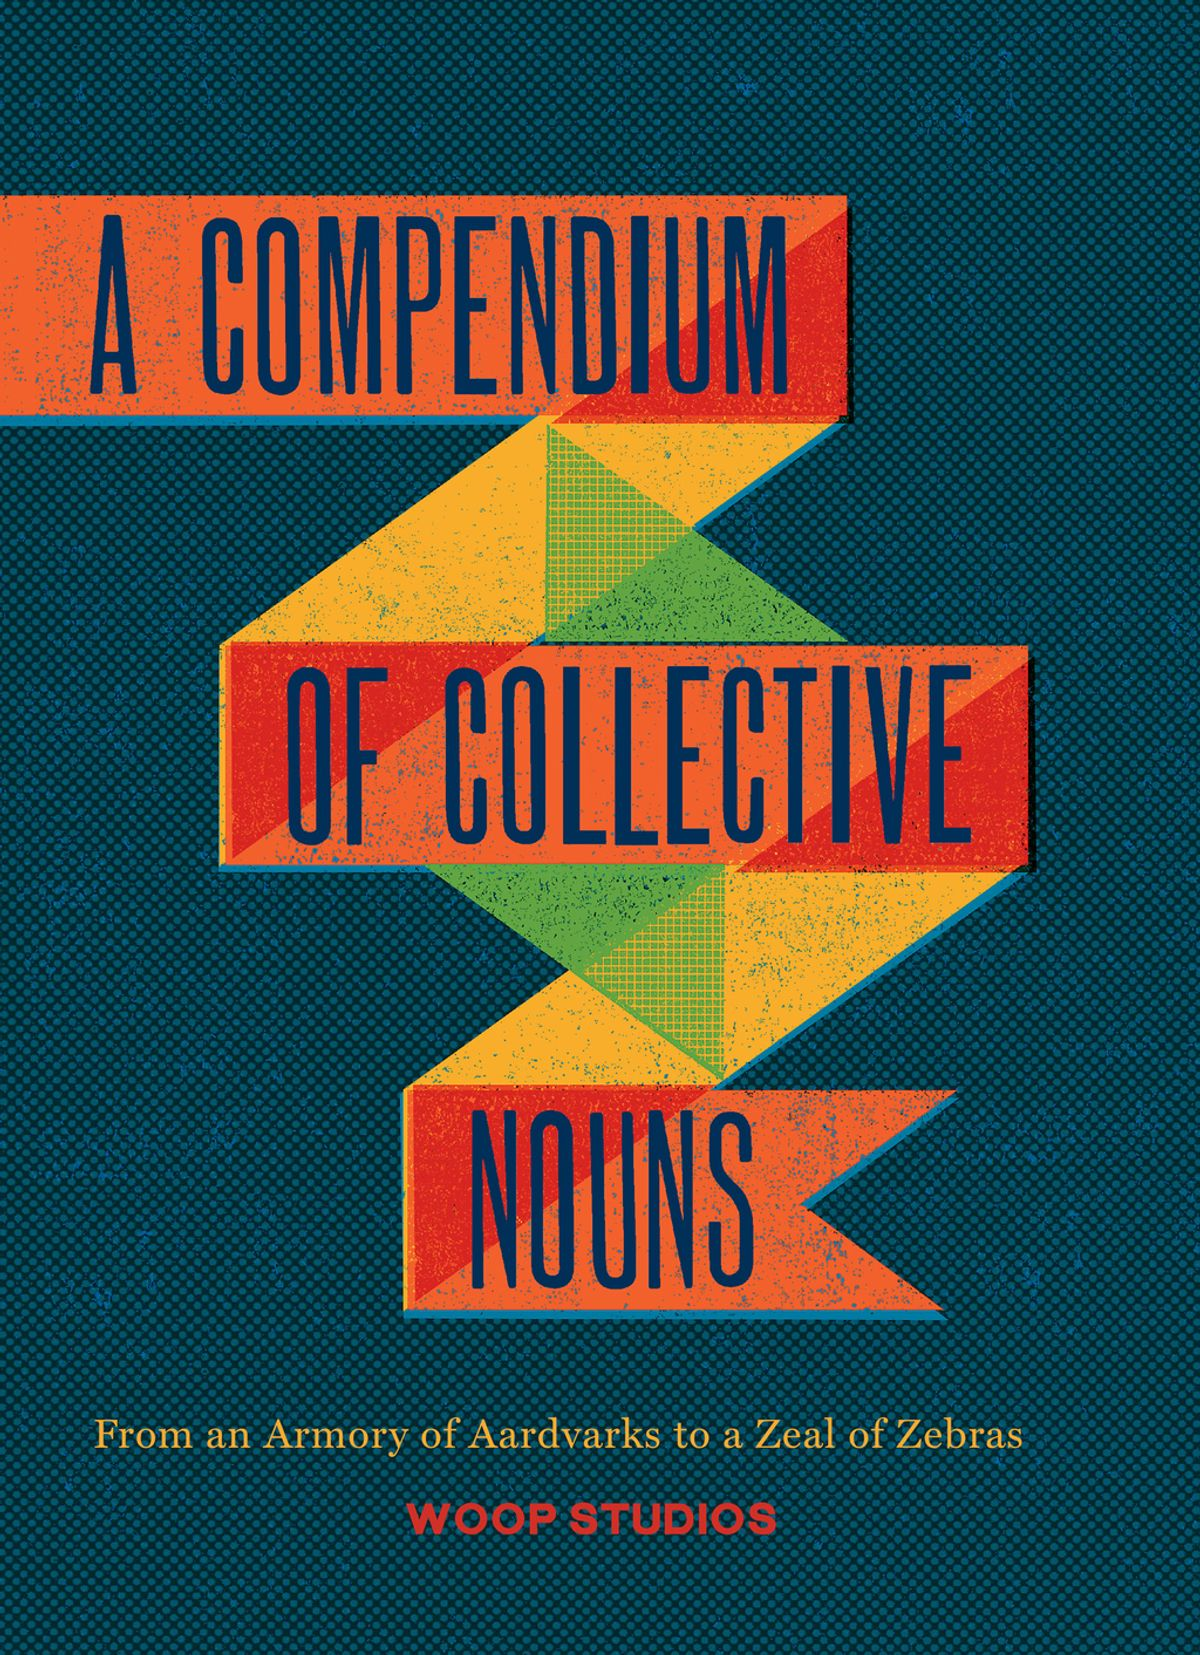 A Compendium of Collective Nouns by Woop Studios, ISBN: 9781452129525